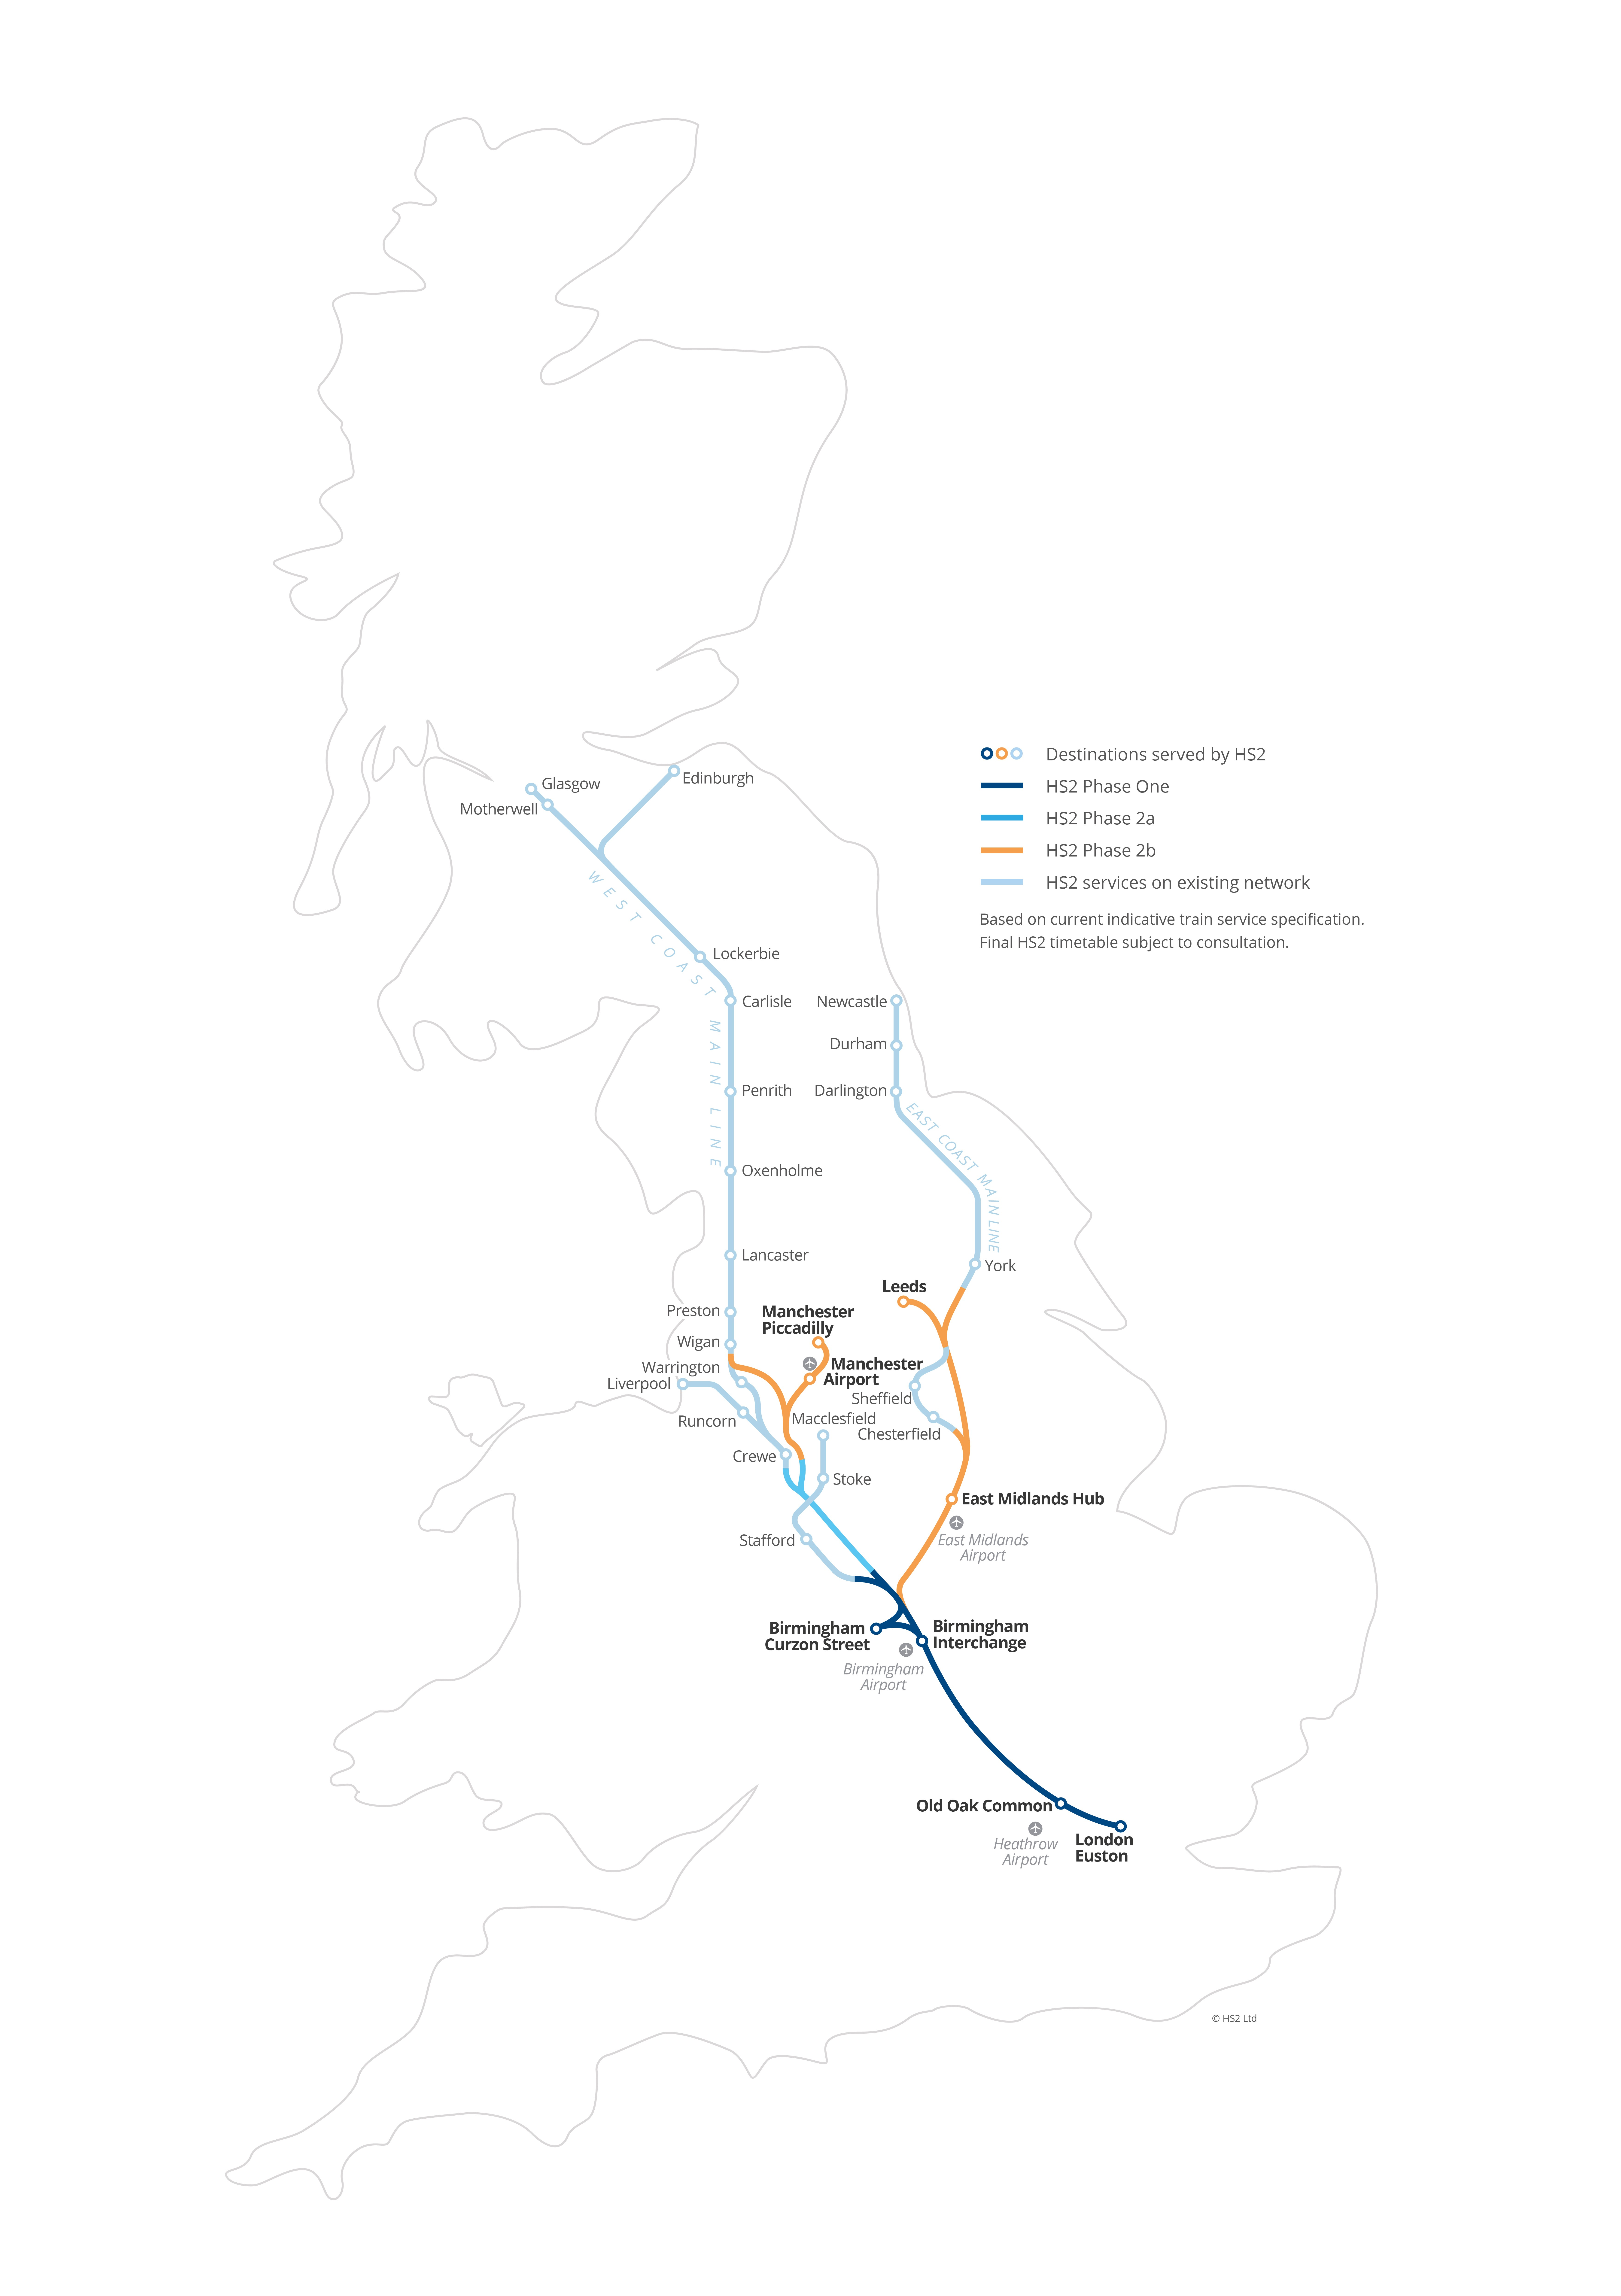 DfT Appoints Independent Construction Commissioner for HS2 Phase 2a